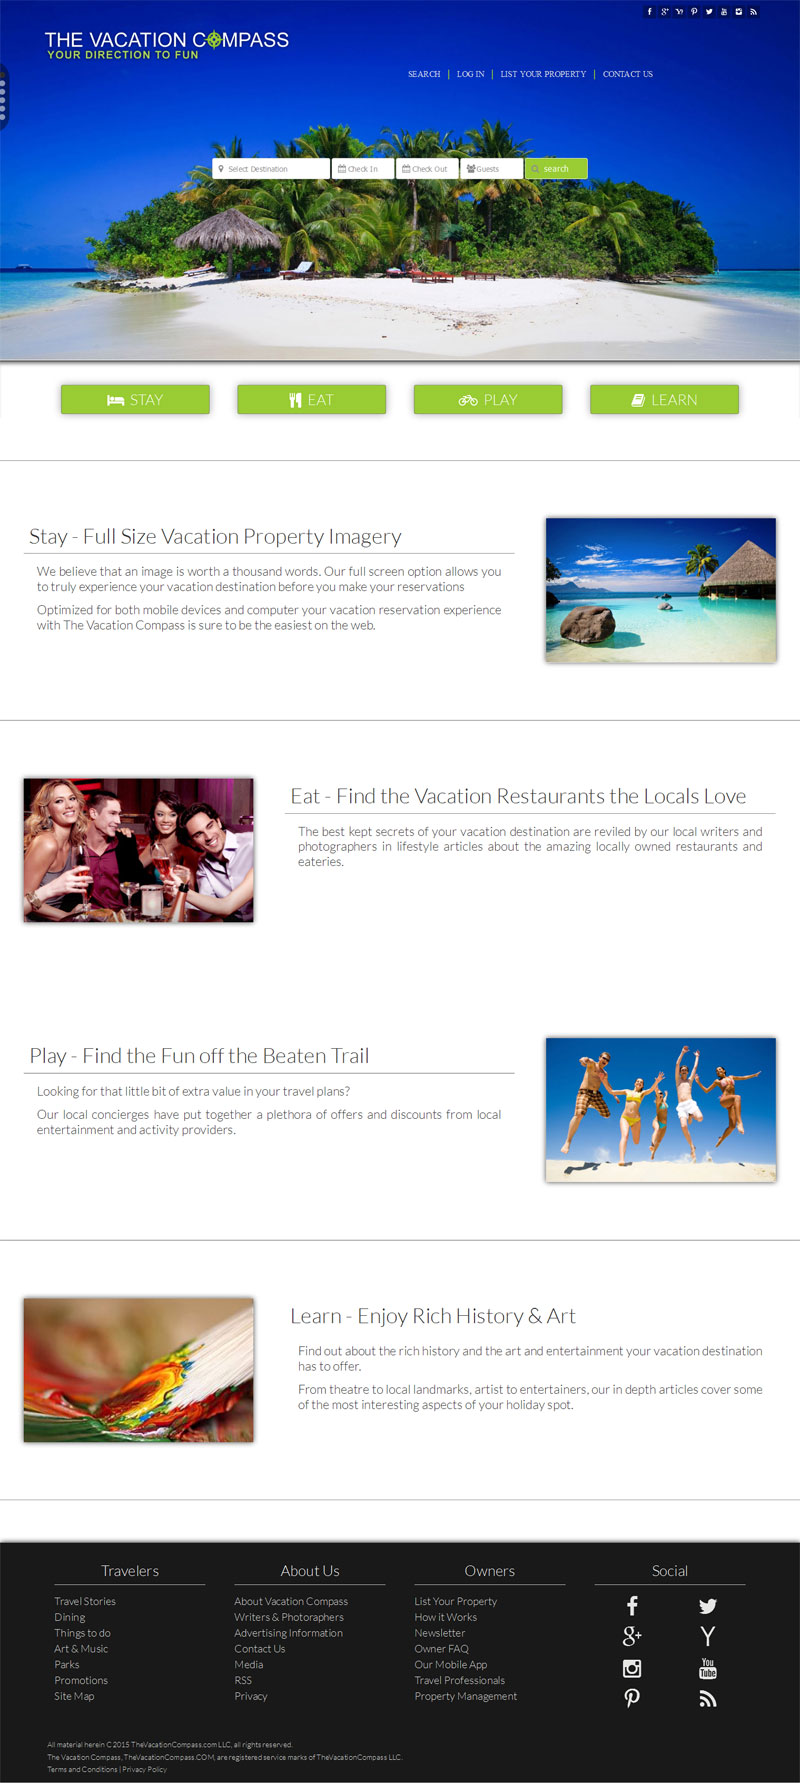 Website design Vacation and Travel Website - The Vacation Compass